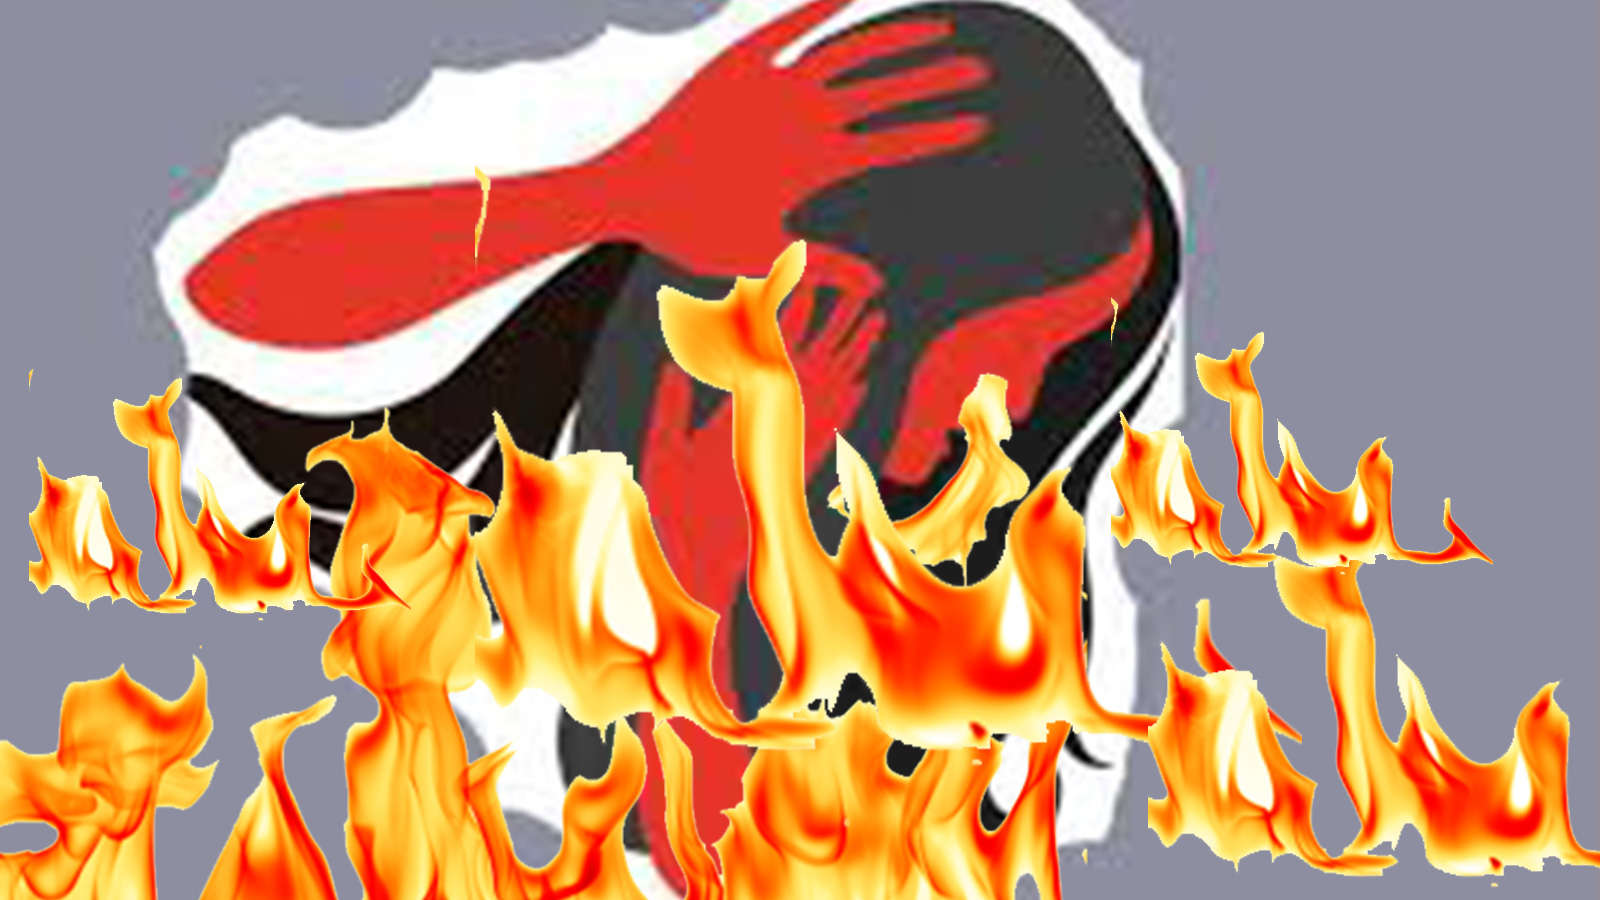 Only three days left for marriage;  The masked men burned the woman with diesel,www.thekeralatimes.com